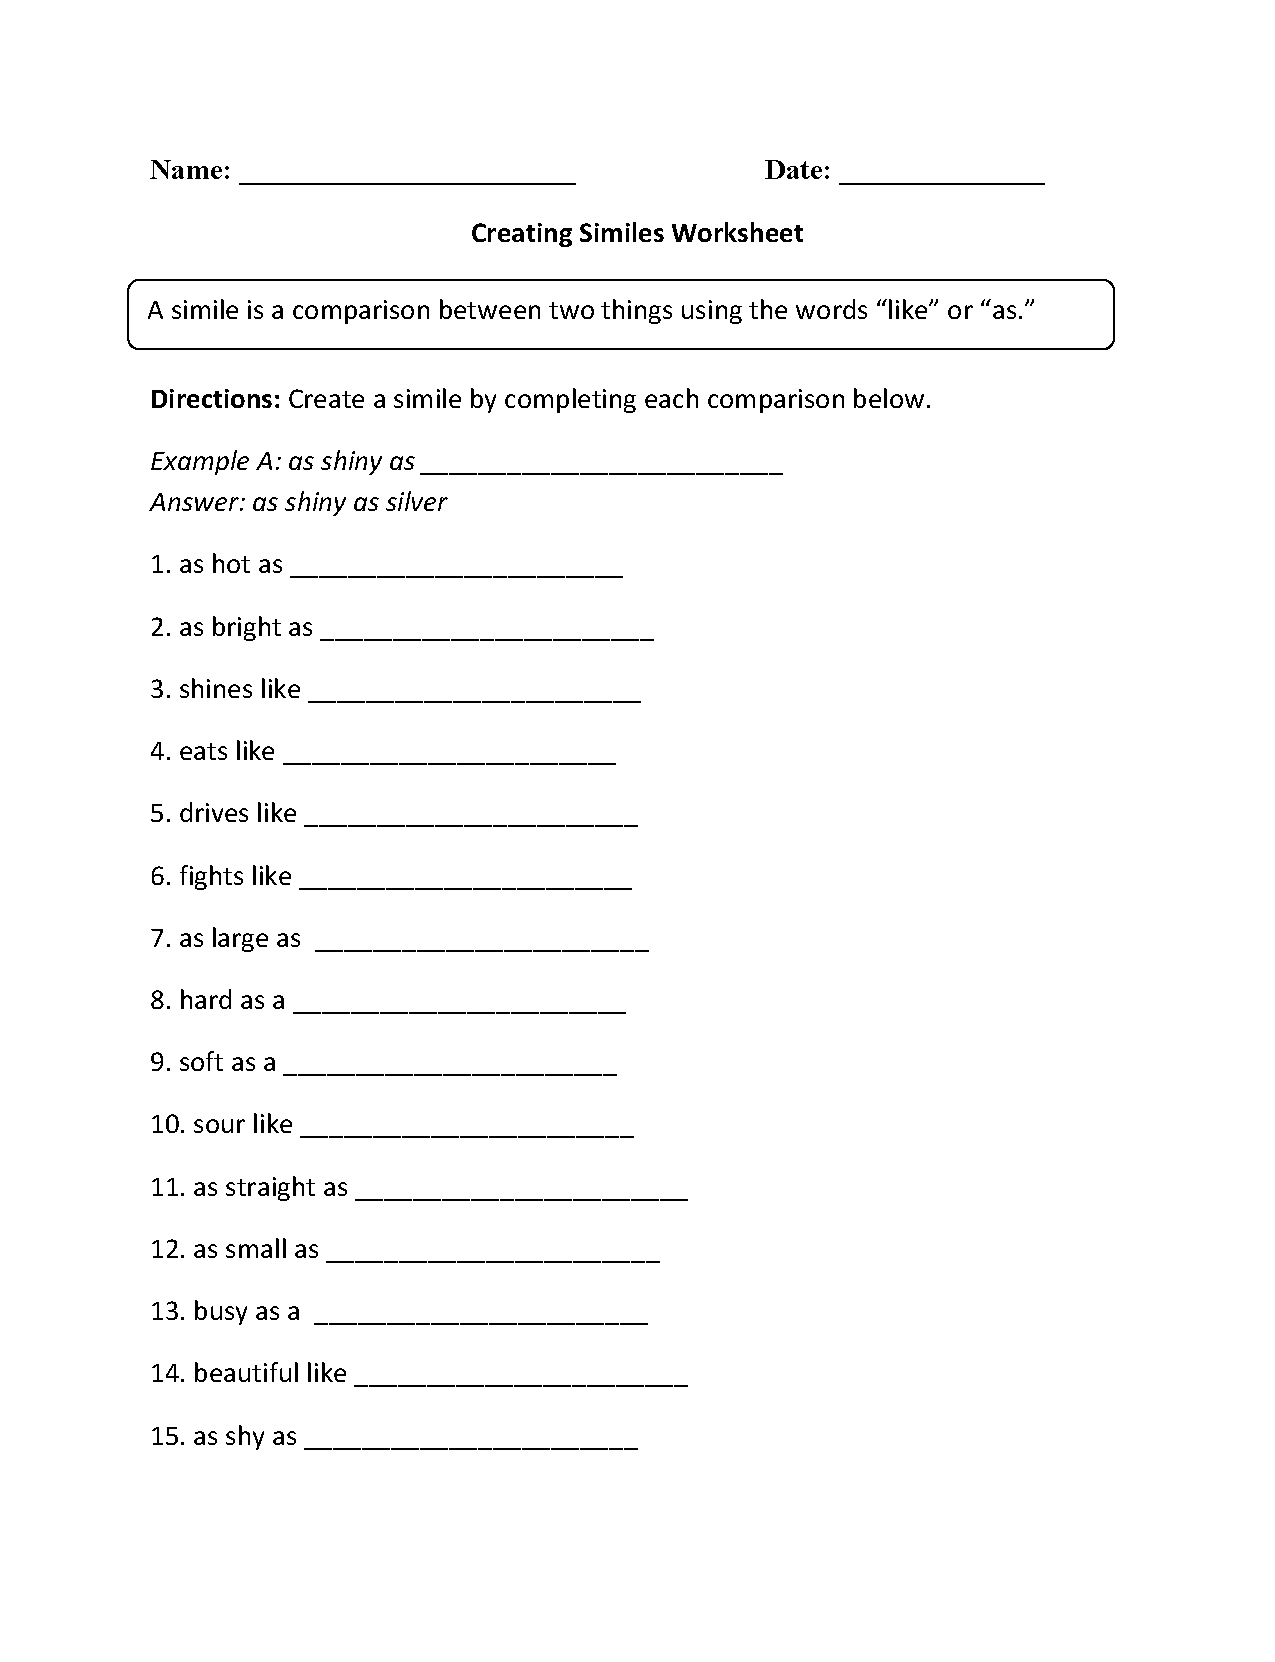 Metaphor Worksheets For 3Rd Grade : ABITLIKETHIS